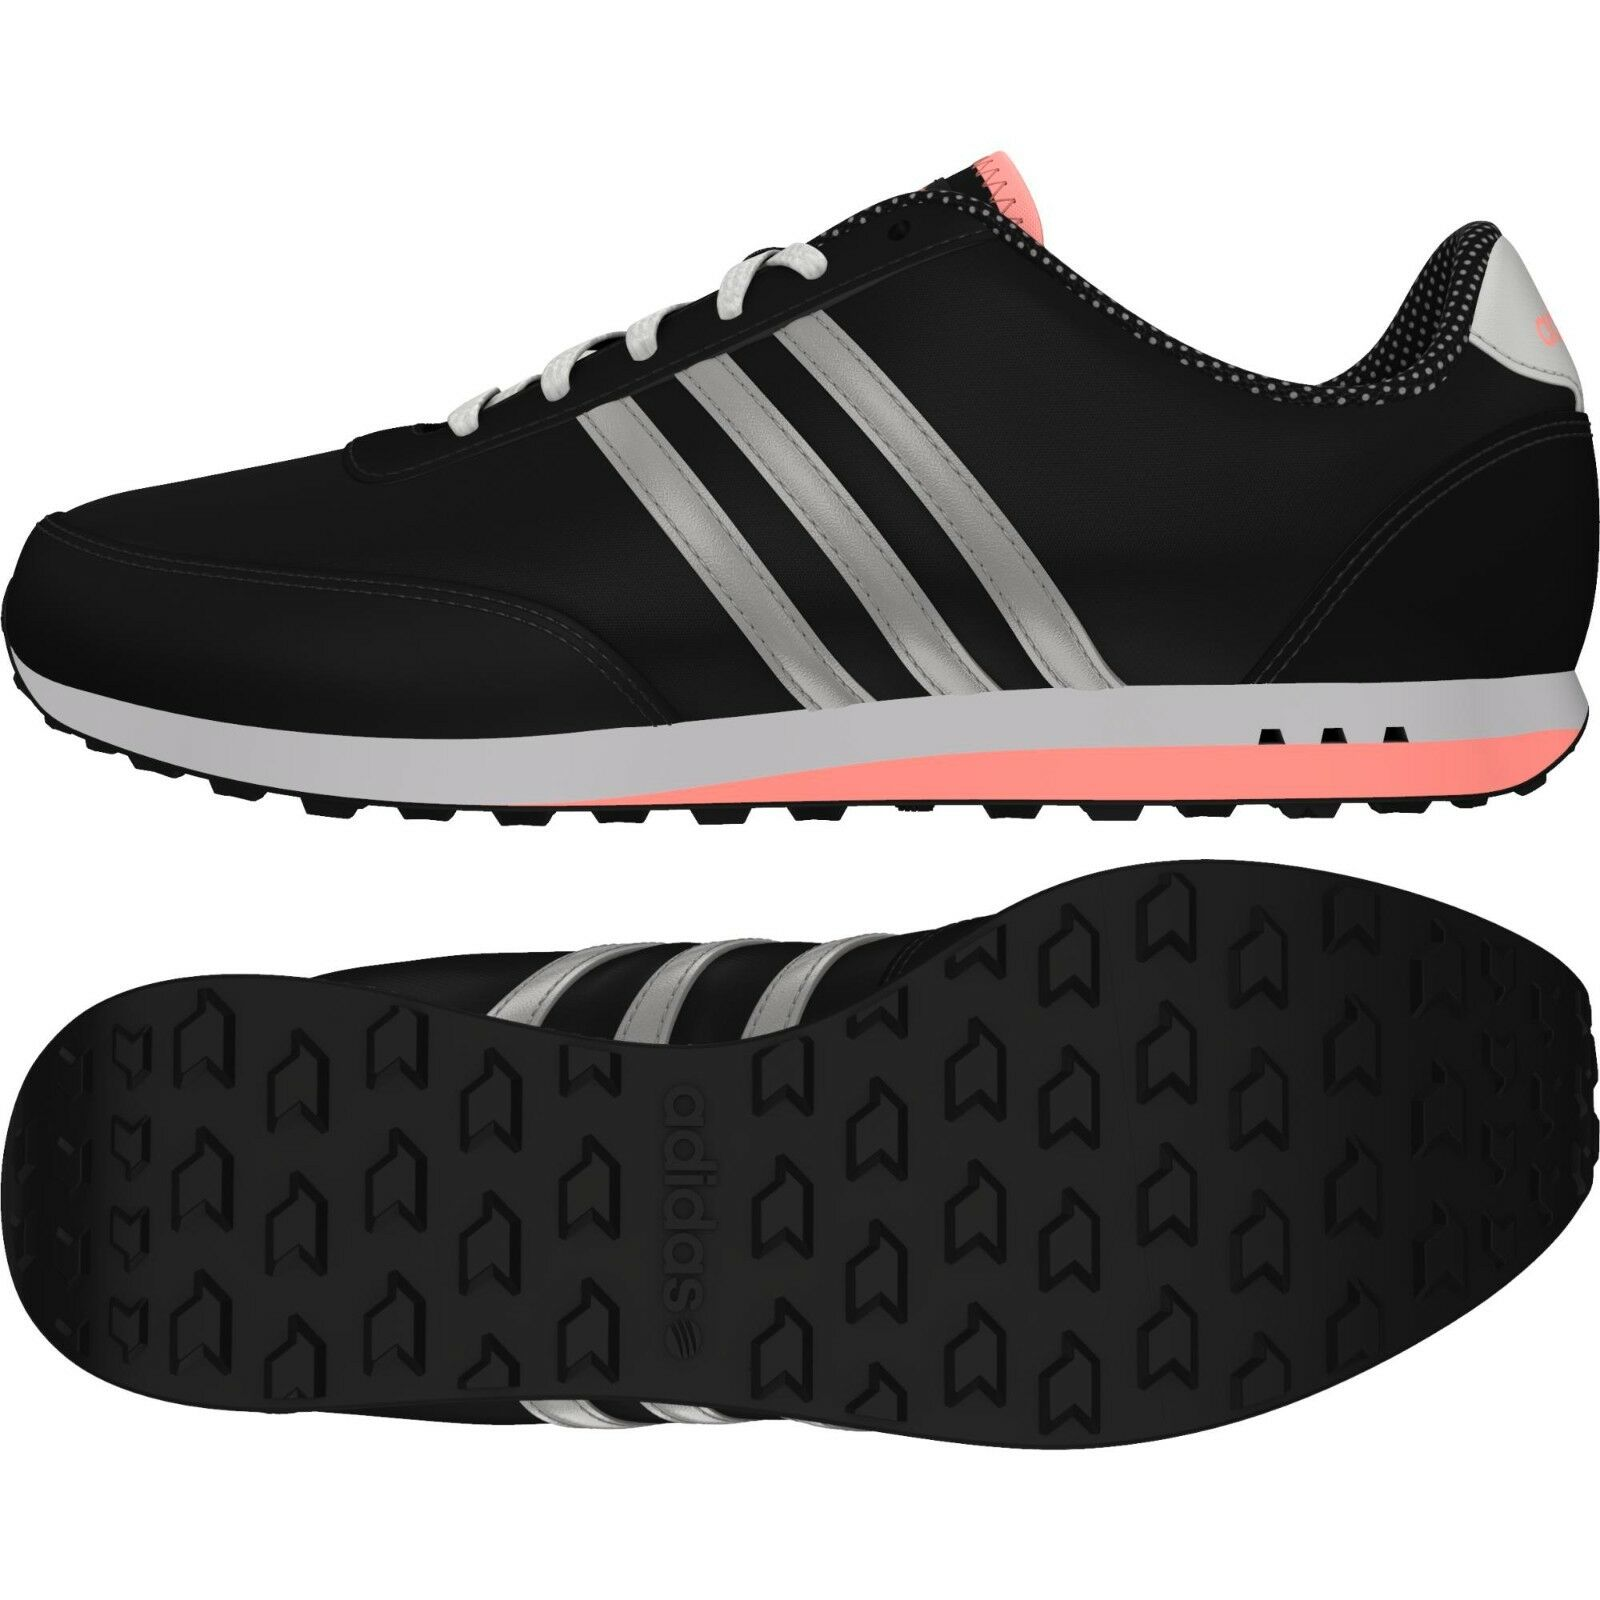 New Adidas Neo Neo Adidas Neo Adidas Donna Style Racer Athletic In esecuzione scarpe   52274d